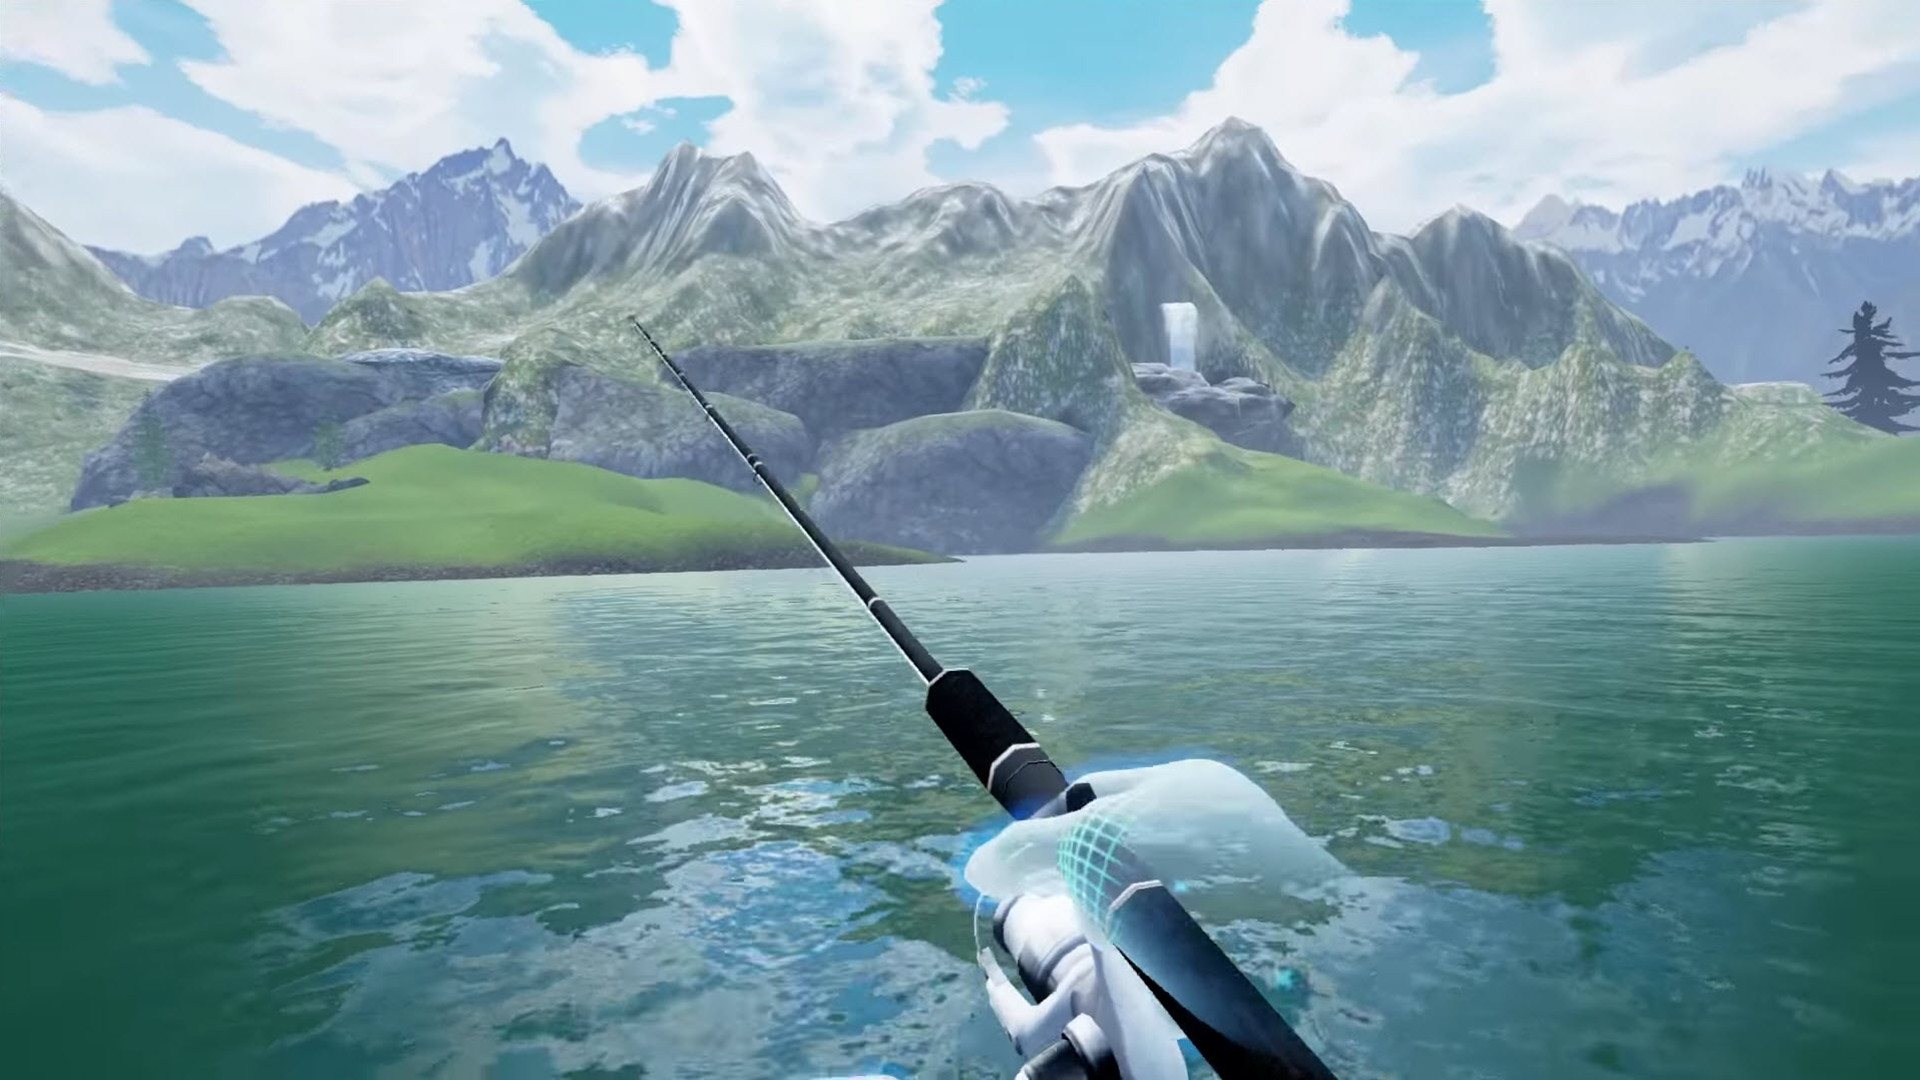 Pro fishing challenge vr reviews overview vrgamecritic for Fishing vr games